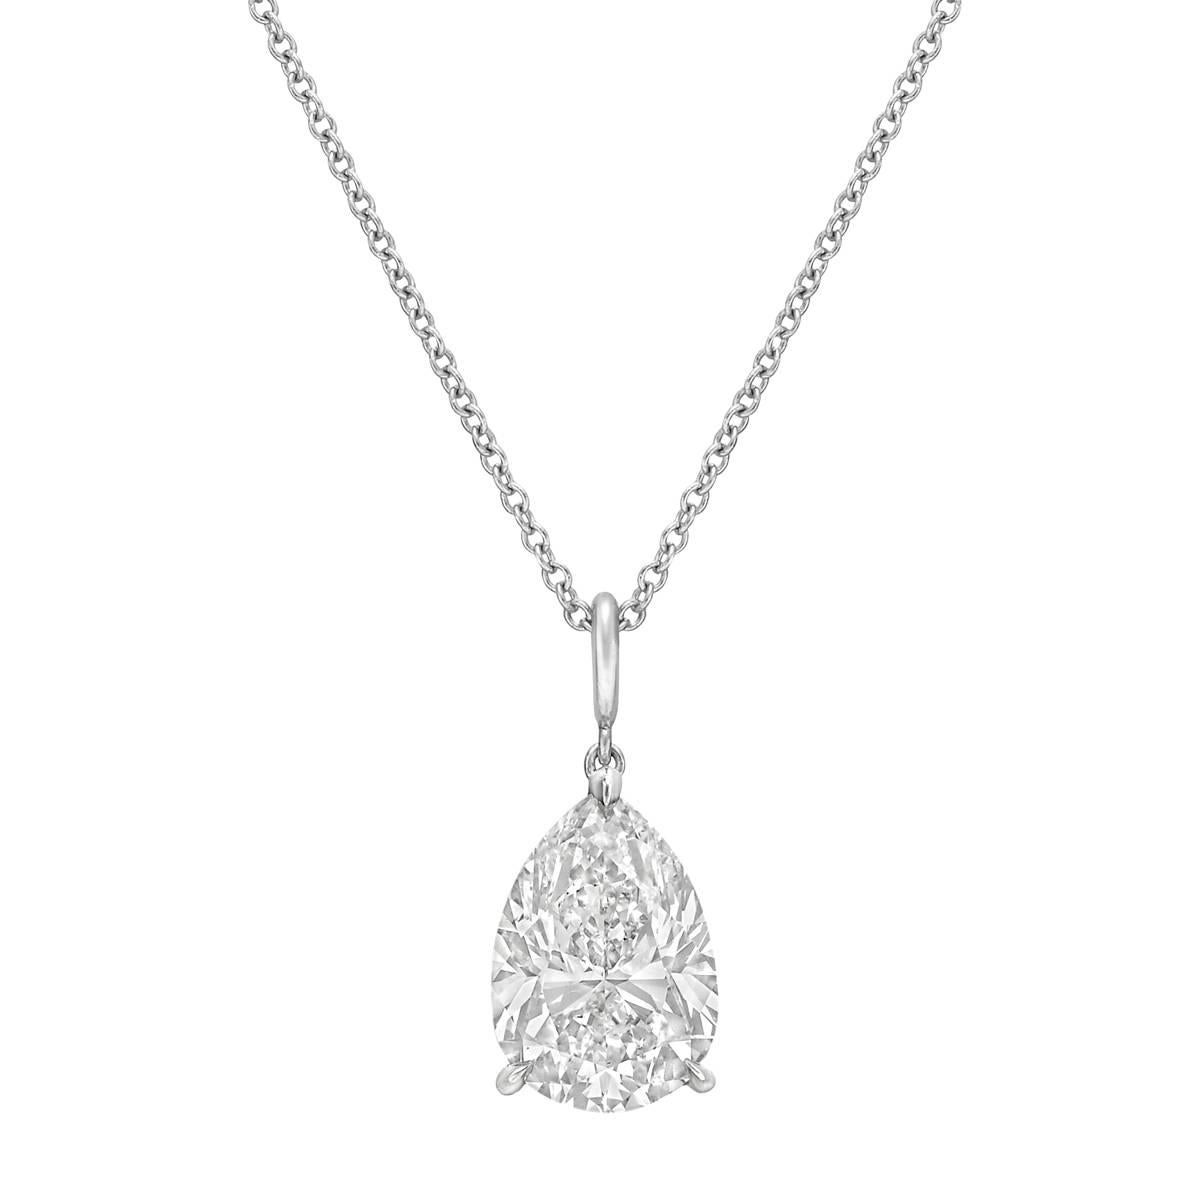 necklace pear clarity shaped gold diamond i white solitaire pendant egl certifie